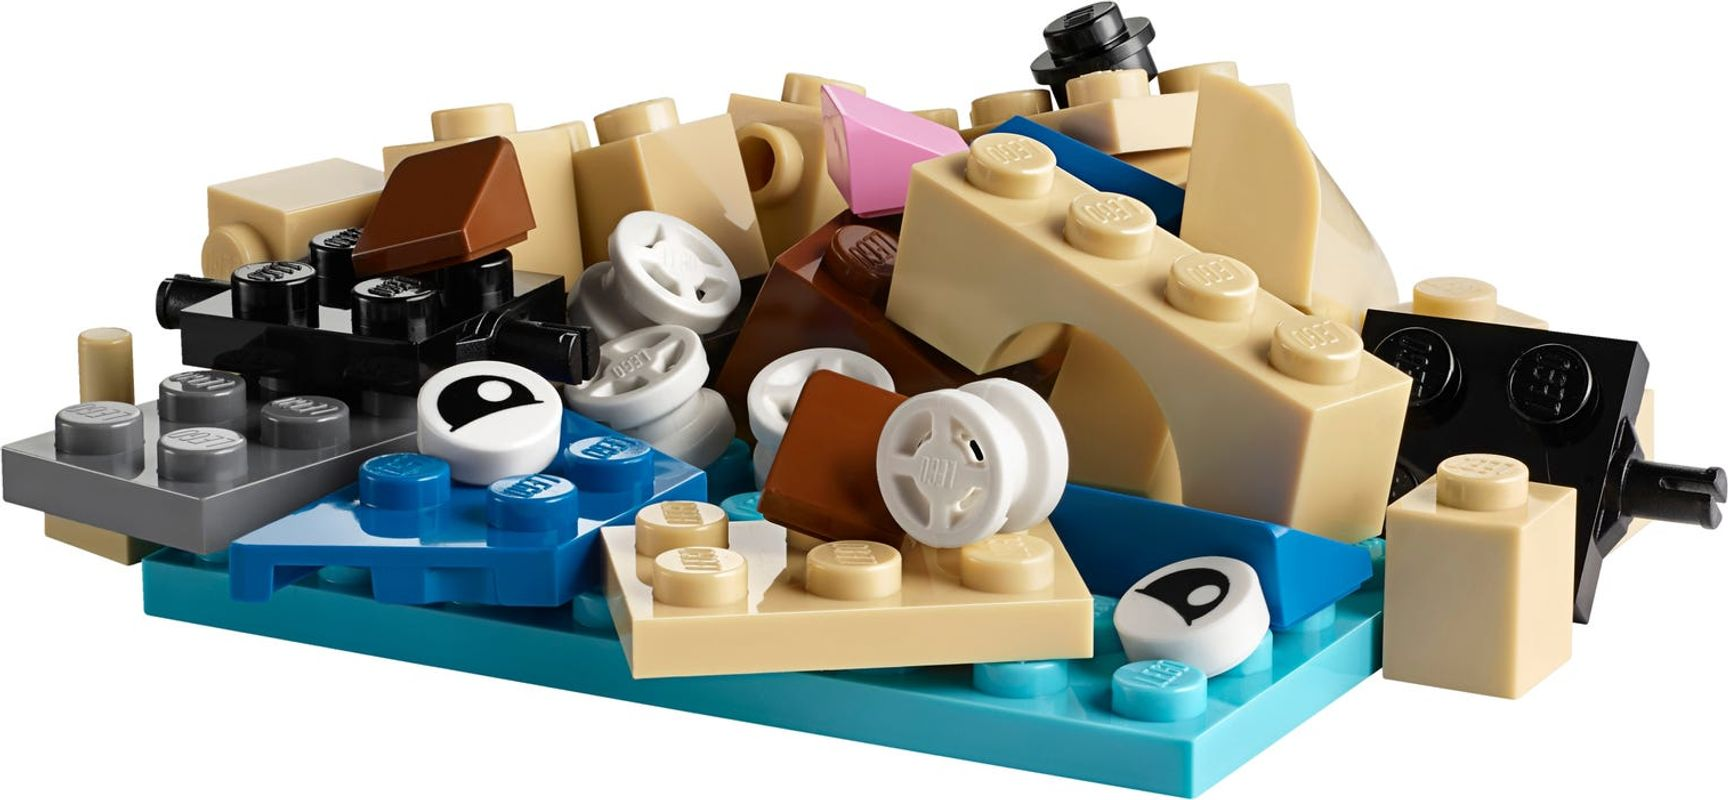 Bricks on a Roll components